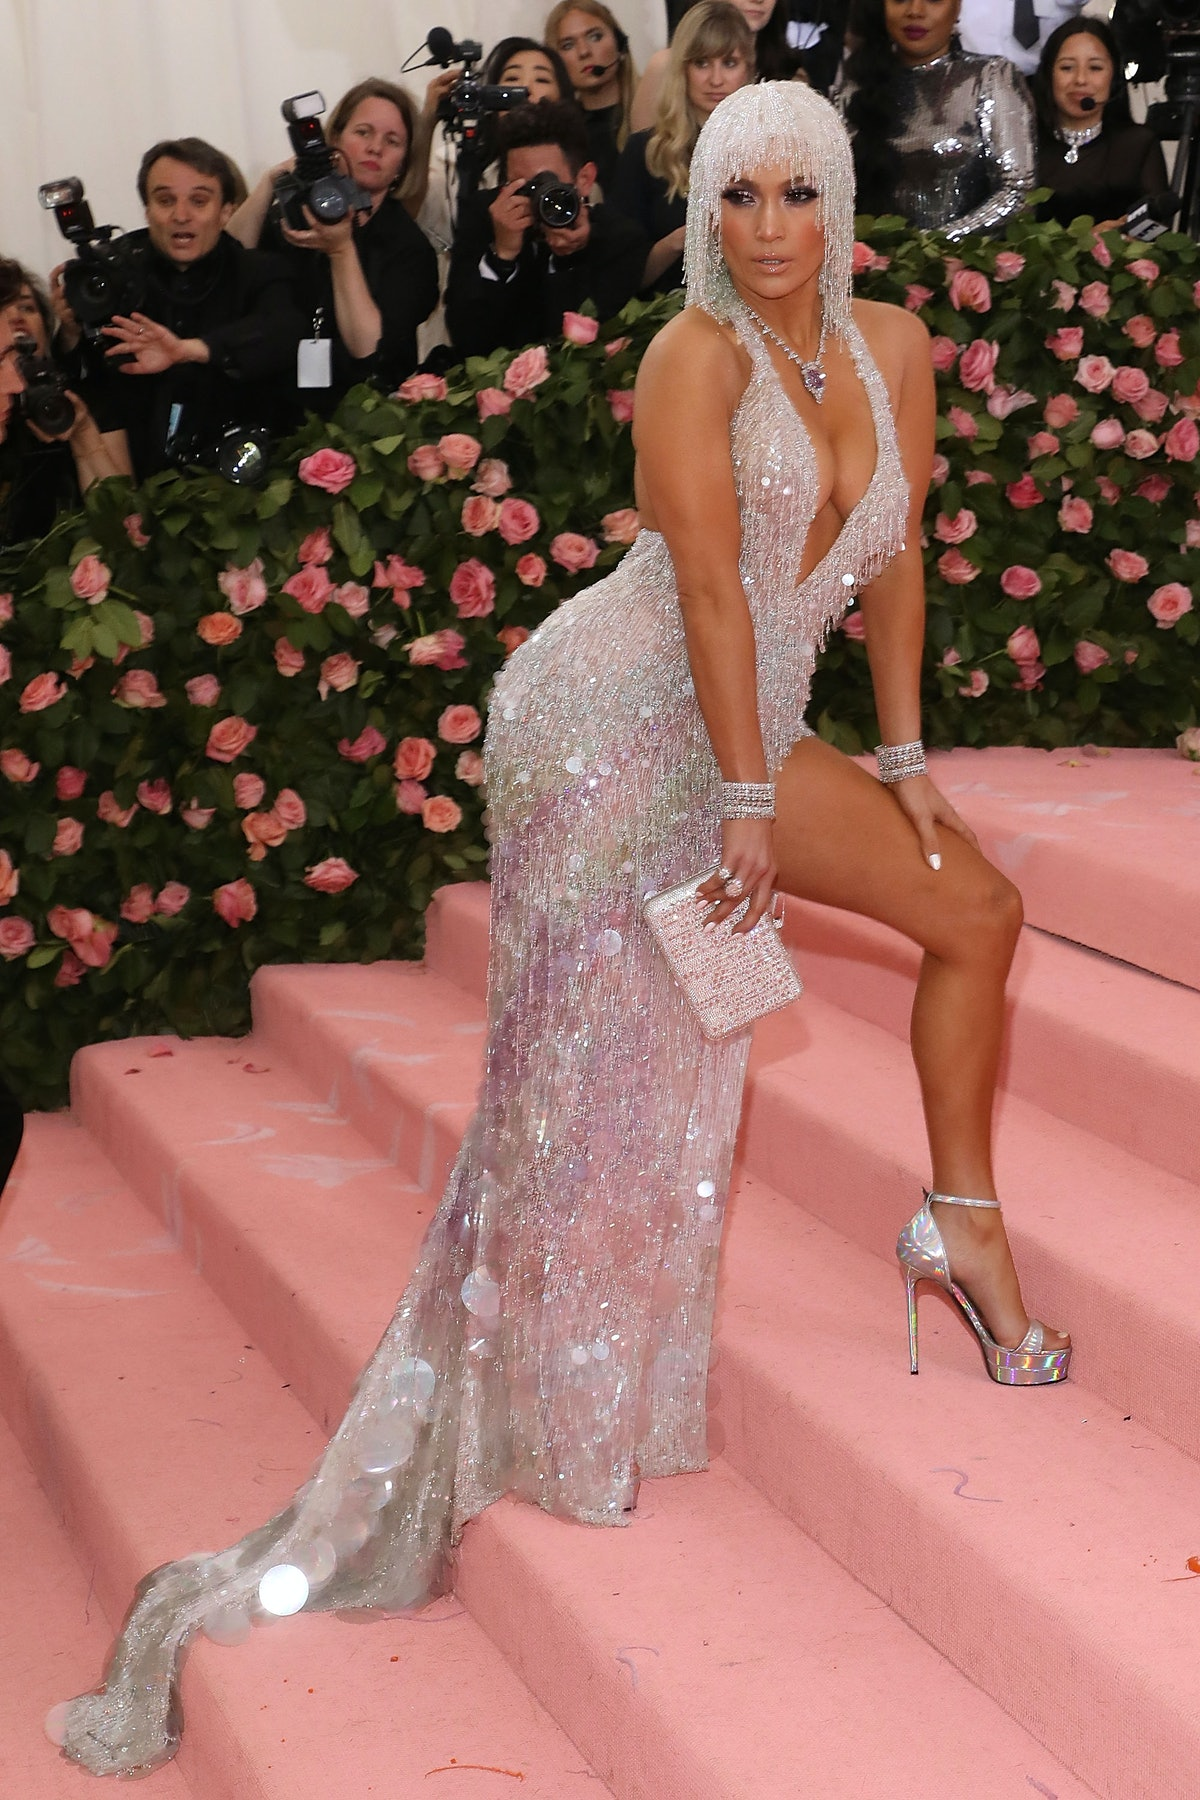 Jennifer Lopez attends the 2019 Met Gala in New York City in May 2019.